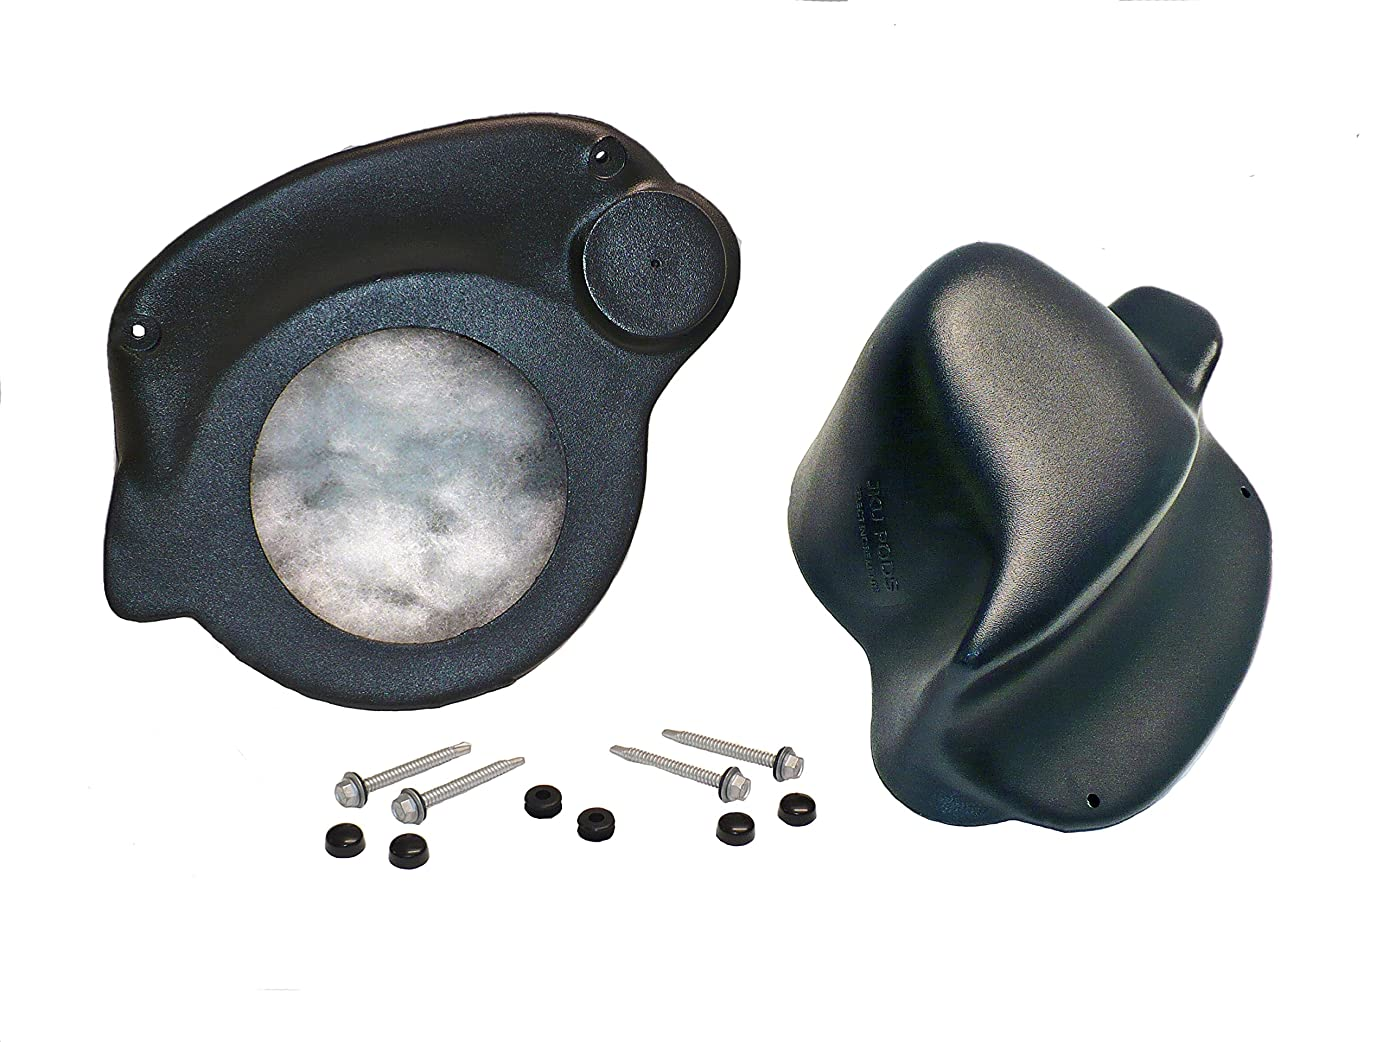 JKU-Pods By Select Increments - 07-16 Jeep Wrangler Unlimited Speaker Pods (Enclosures Only)